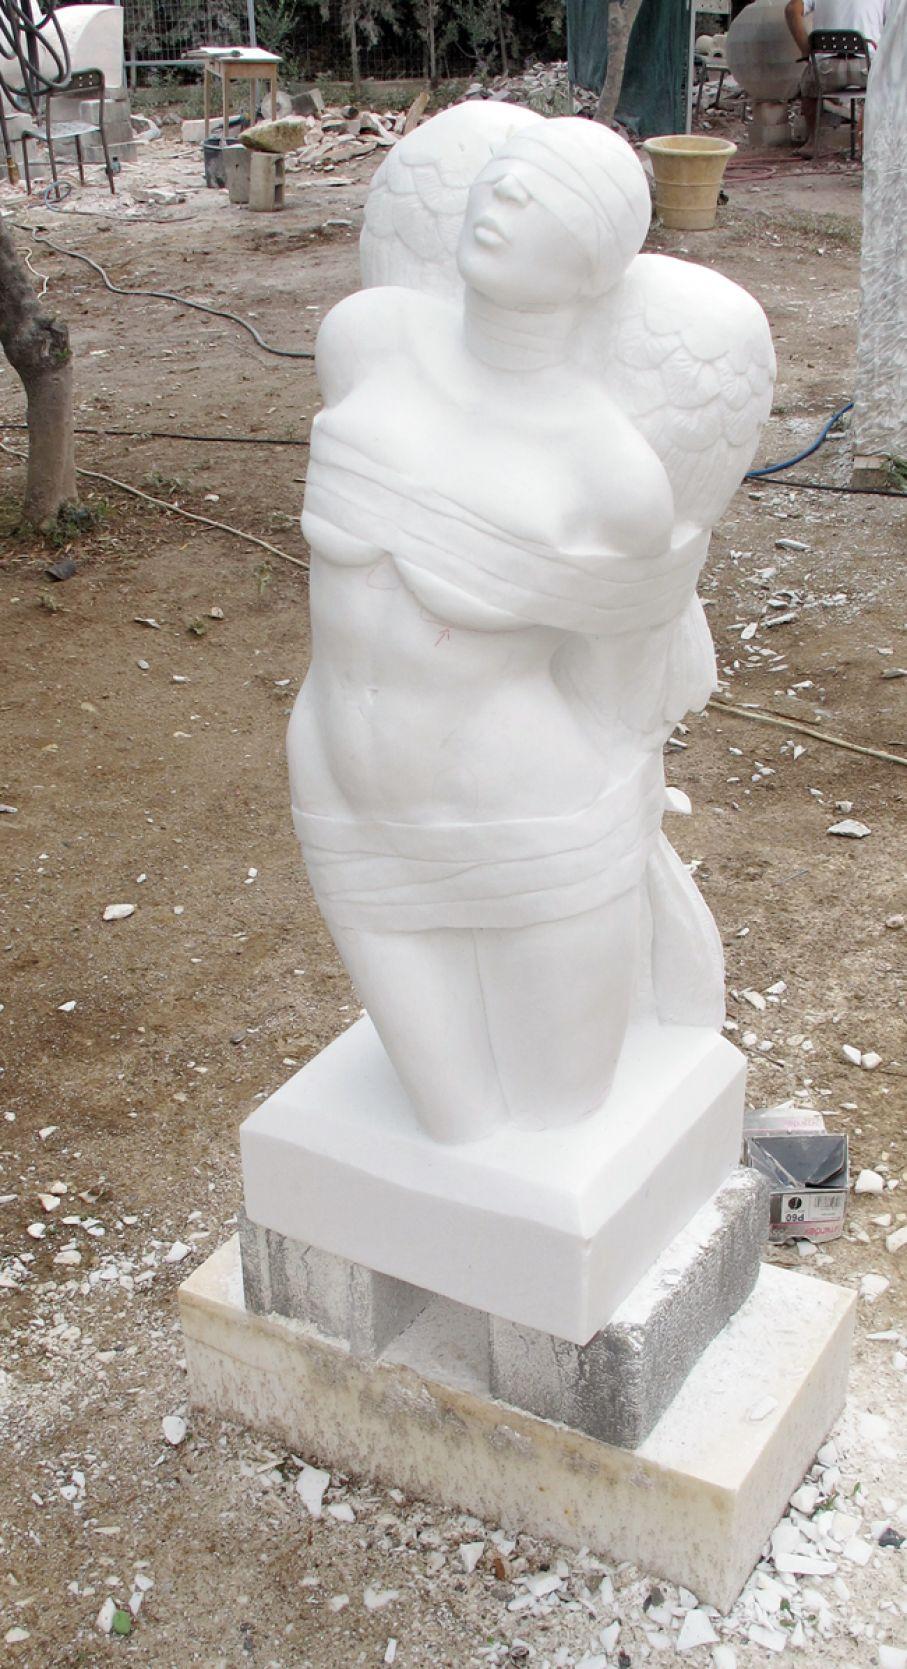 "Original marble sculpture of Sherry Tipton, completed on July 2014, within Myrό Antiques House premises, in Souroti, Thessaloniki, GREECE, as part of the Greek Marble Initiative, bearing the title ""Bound Angel III"". Dimensions: 108 X 40 X 36 (depicted with a pedestral, but needs a base)."